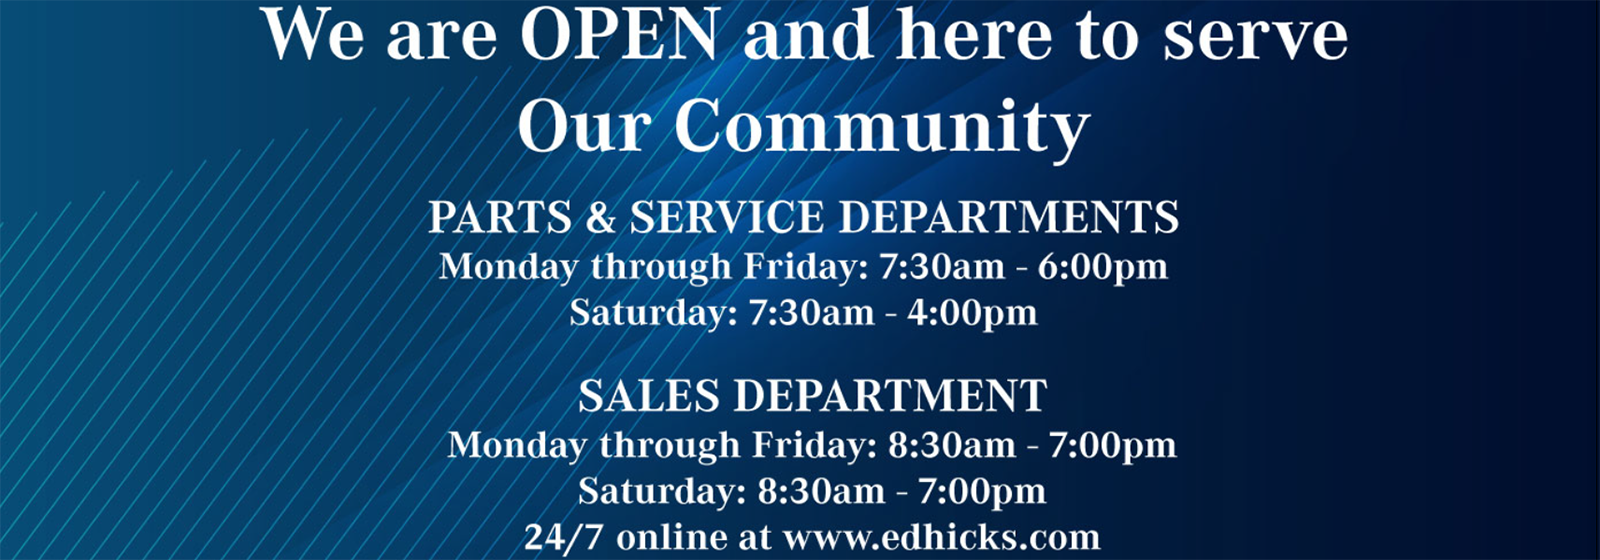 We are OPEN and here to serve our community.